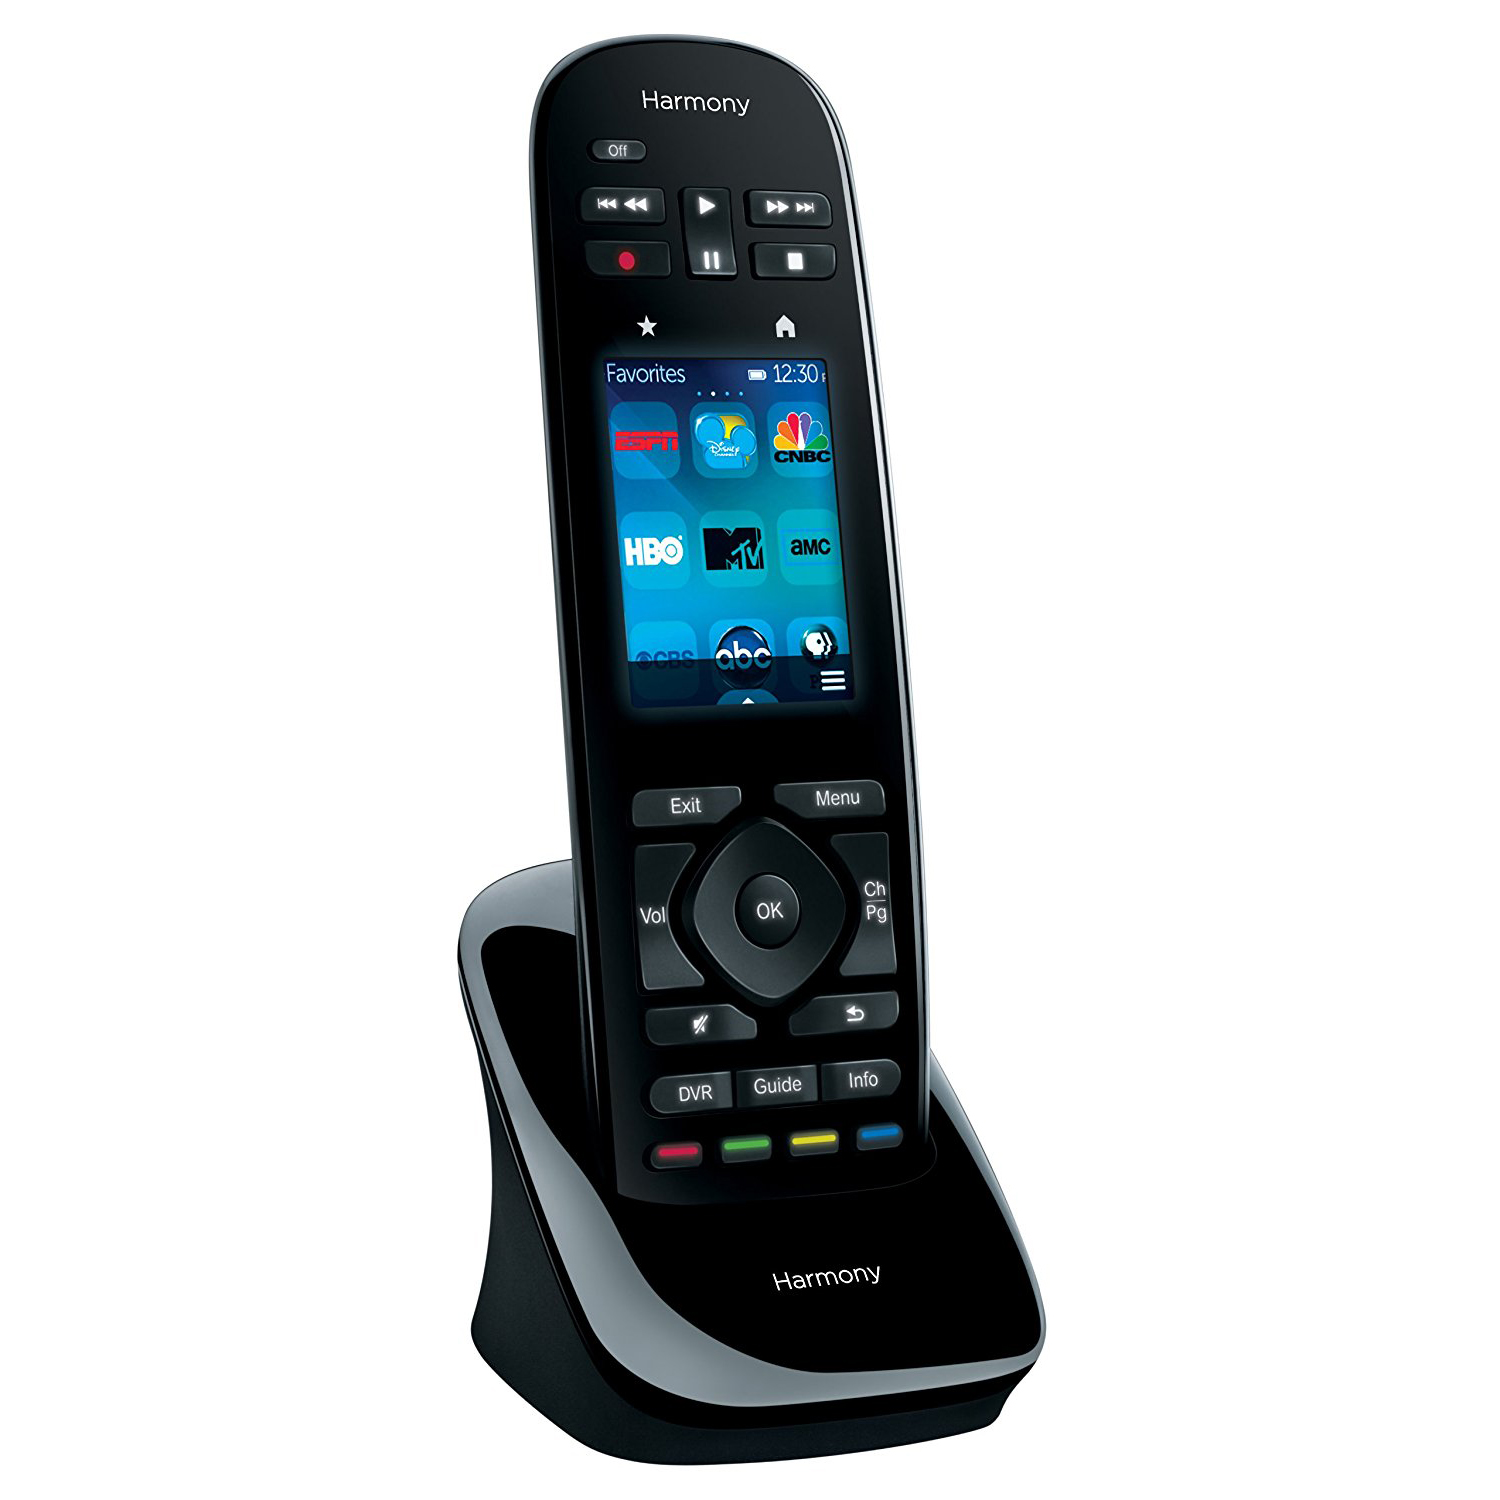 logitech harmony ultimate one universal remote control 2 4 touch 915 000224 ebay. Black Bedroom Furniture Sets. Home Design Ideas